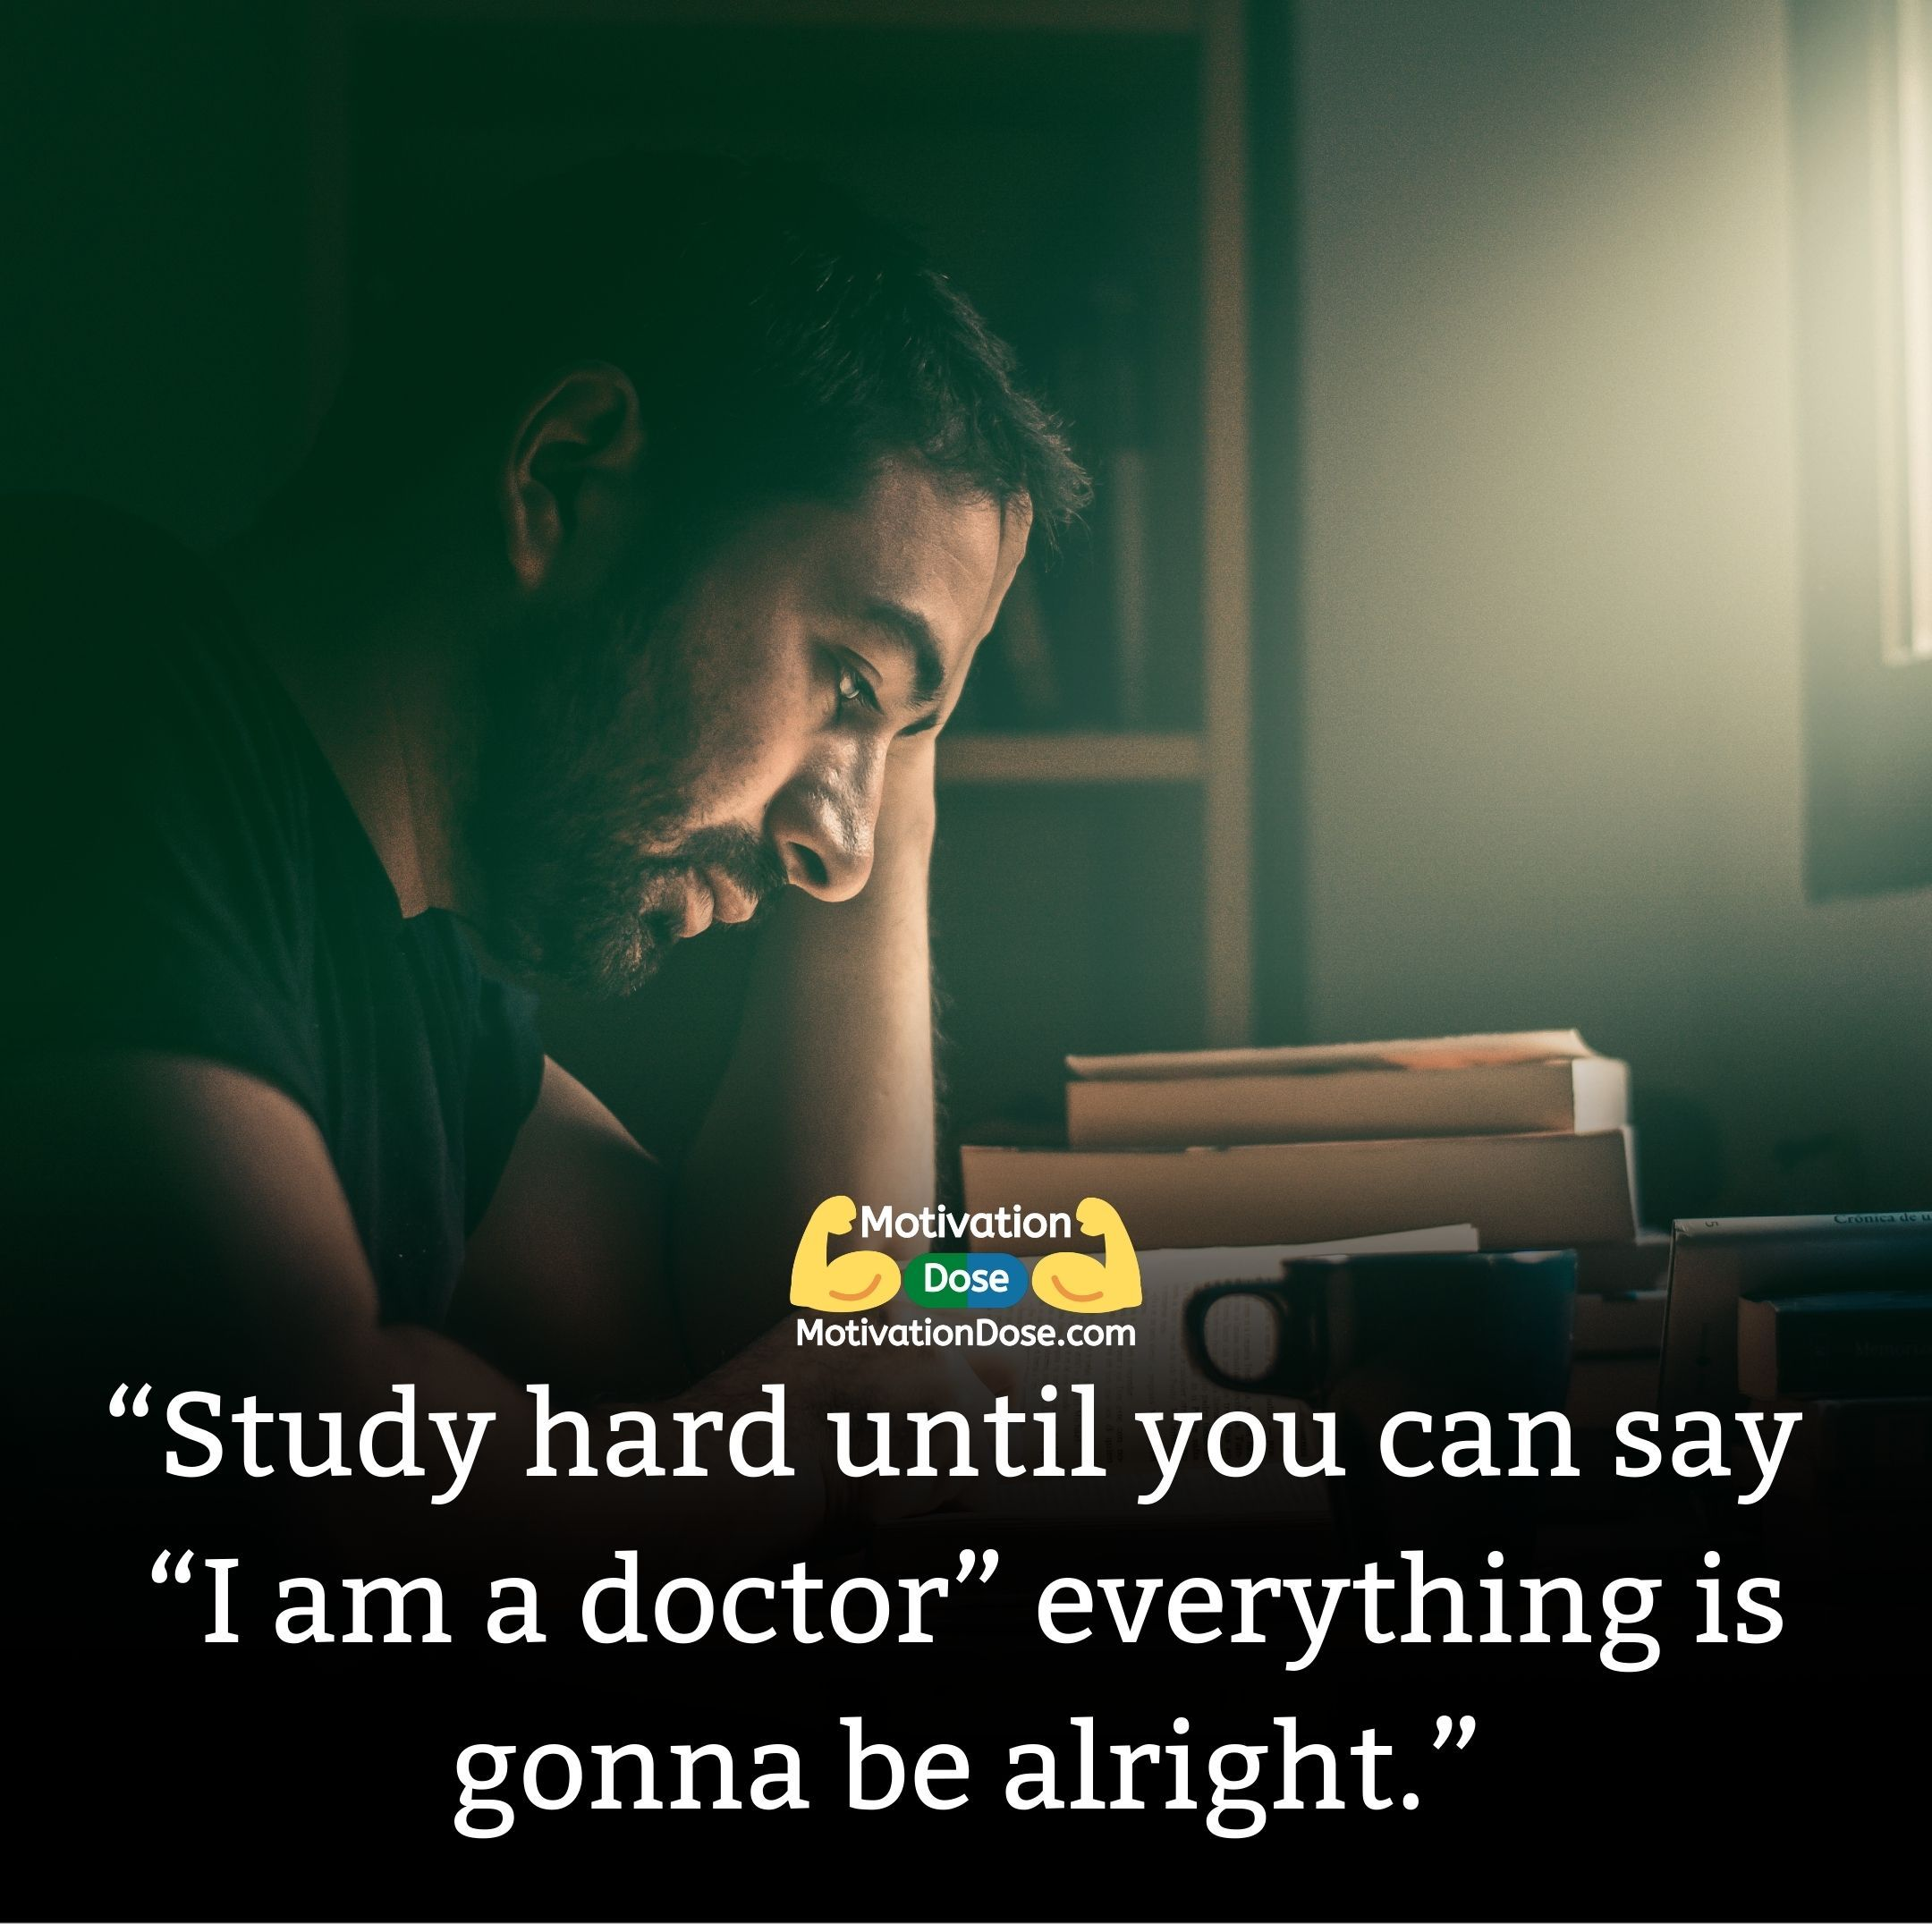 Doctor Motivational Quotes To Provide Motivation For Doctors | Medical  student motivation, Medical school quotes, Motivational quotes